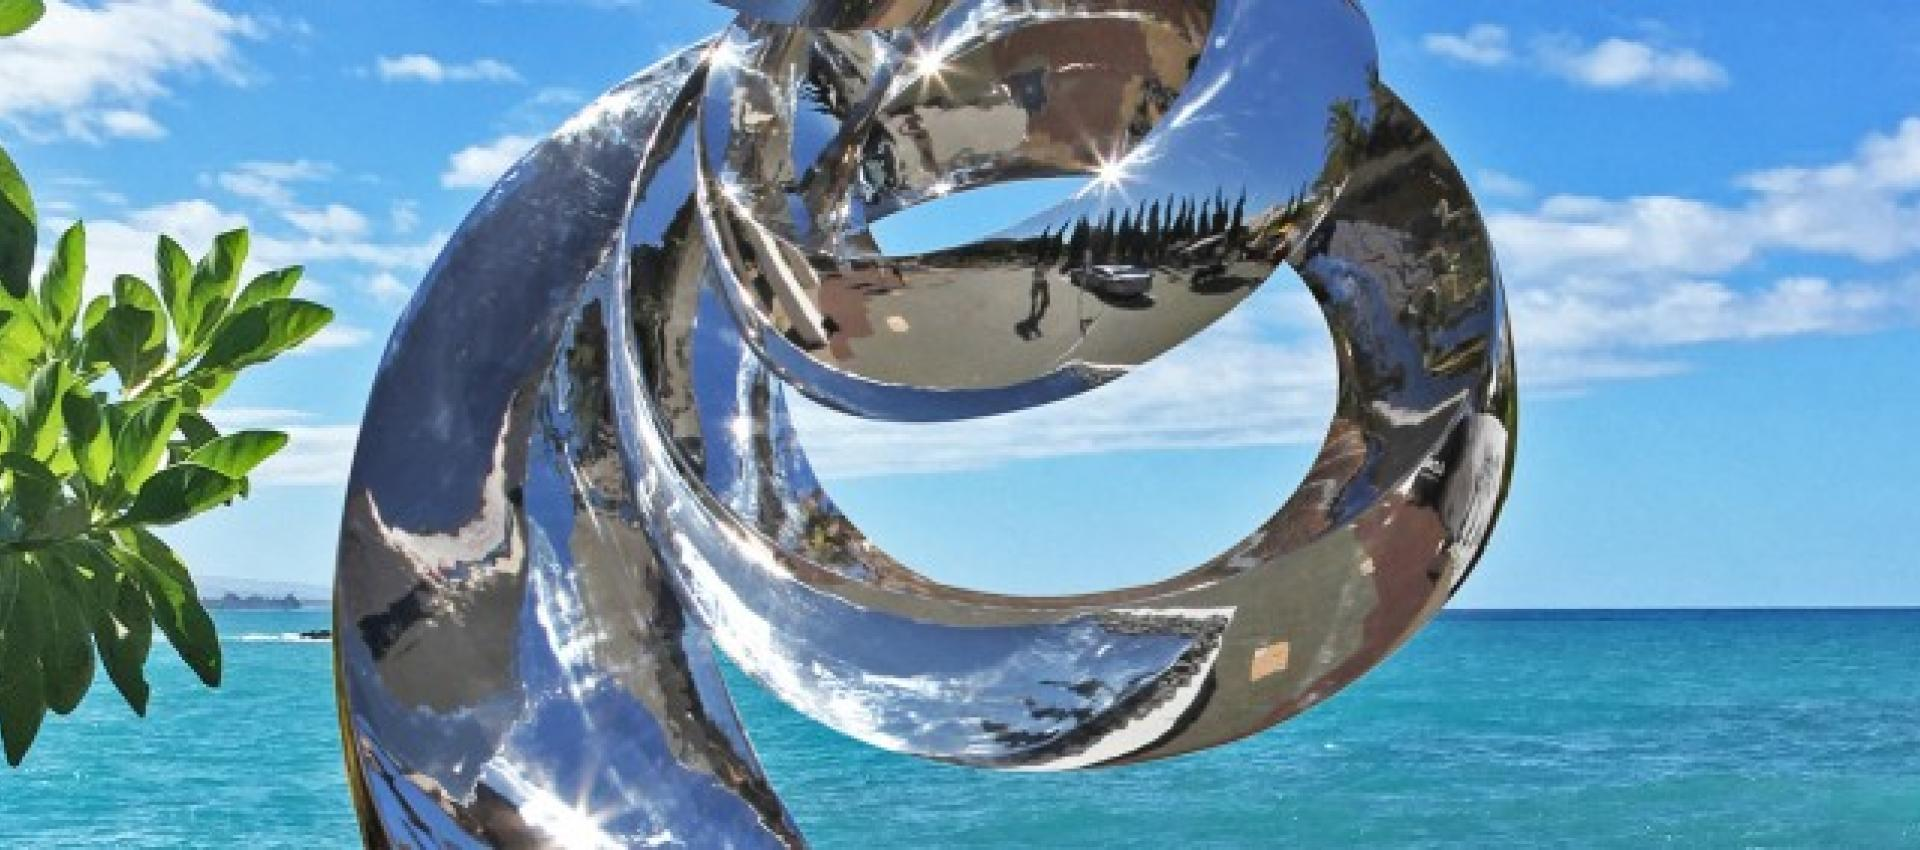 Silver art pice in front of bright blue water and sky.